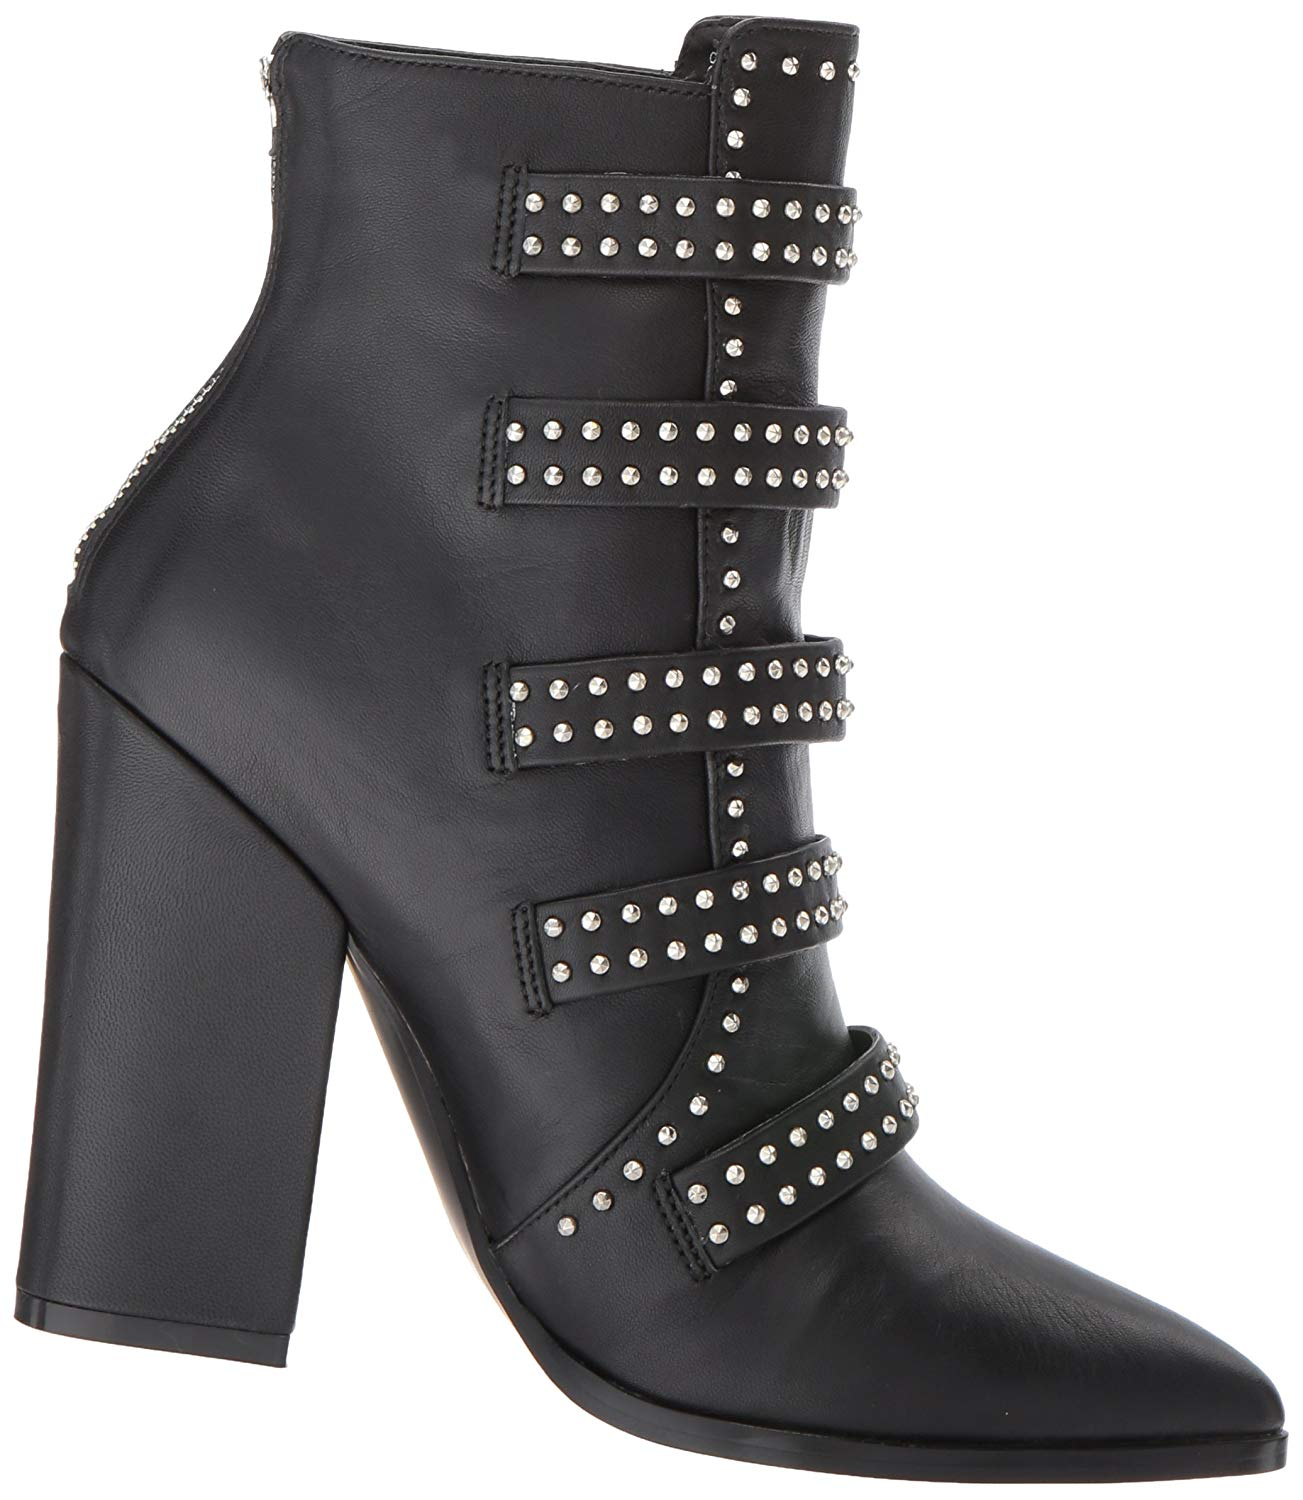 cb624496cf6 Steve Madden Womens Comet Pointed Toe Ankle Fashion Boots